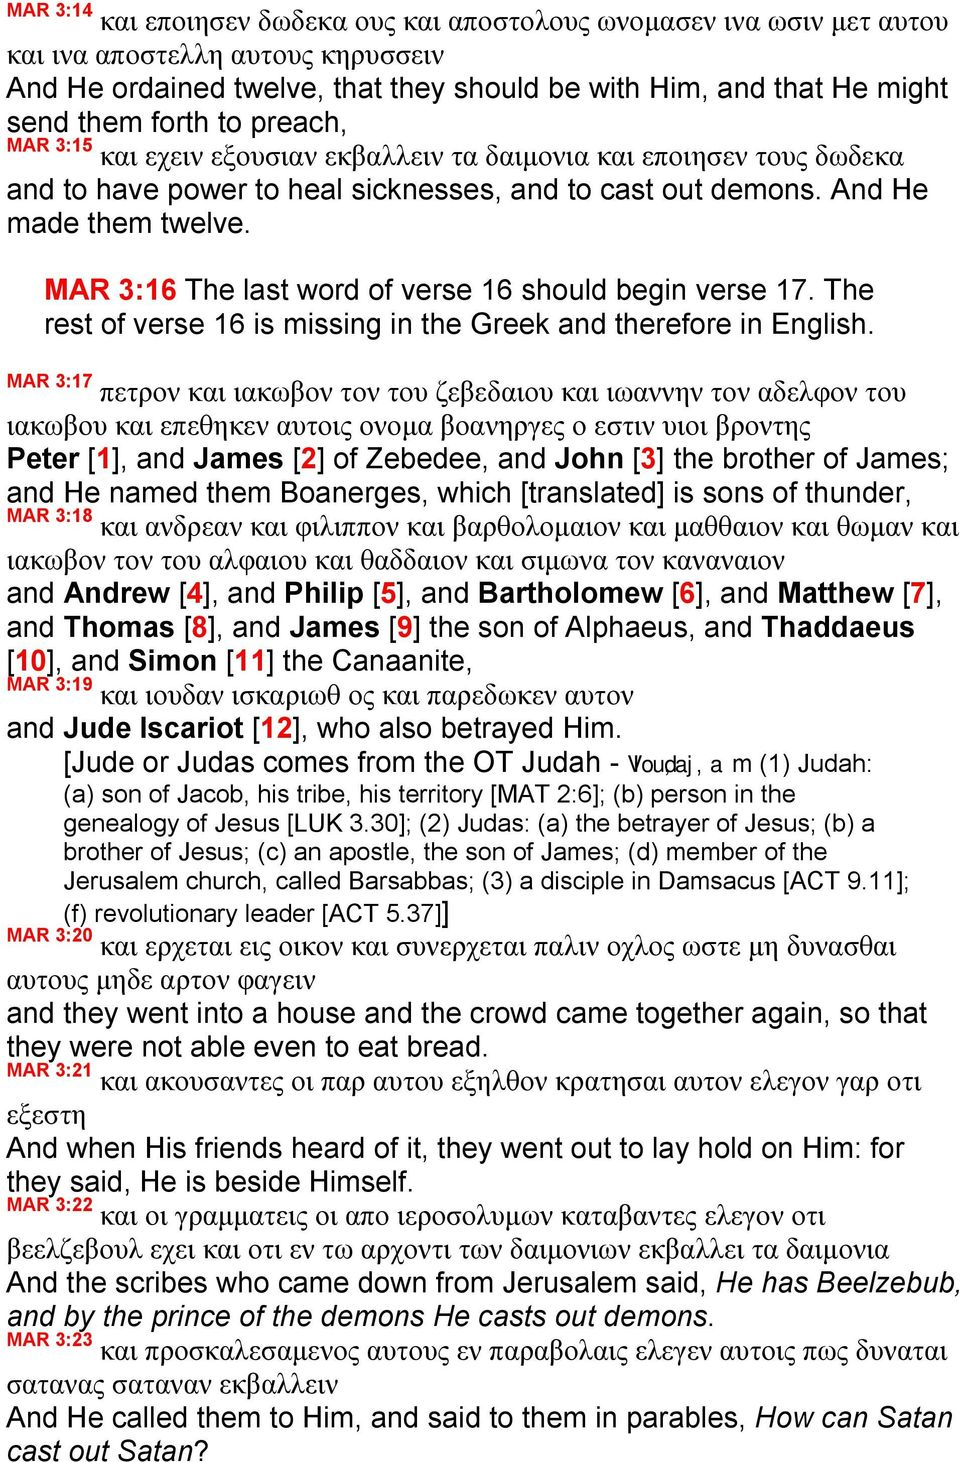 MAR 3:16 The last word of verse 16 should begin verse 17. The rest of verse 16 is missing in the Greek and therefore in English.